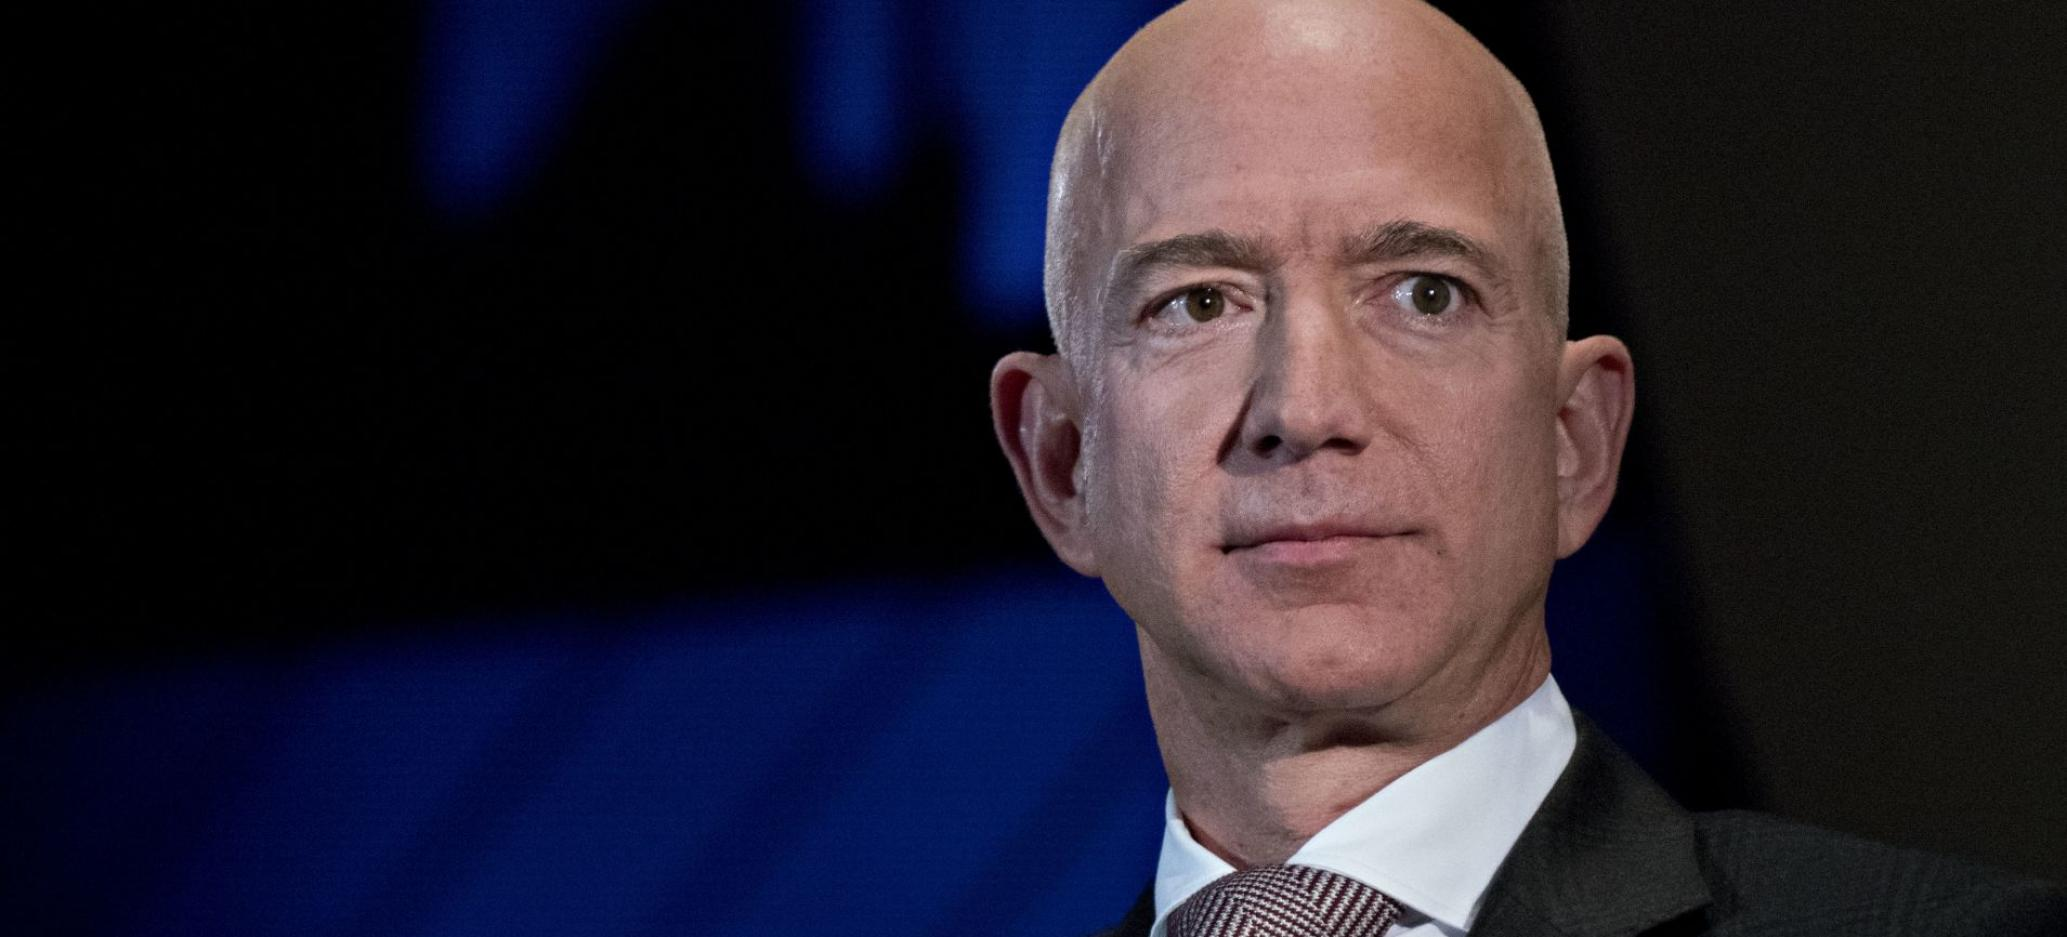 Shareholders Pressure Amazon to Stop Selling Facial Recognition Technology to the Government